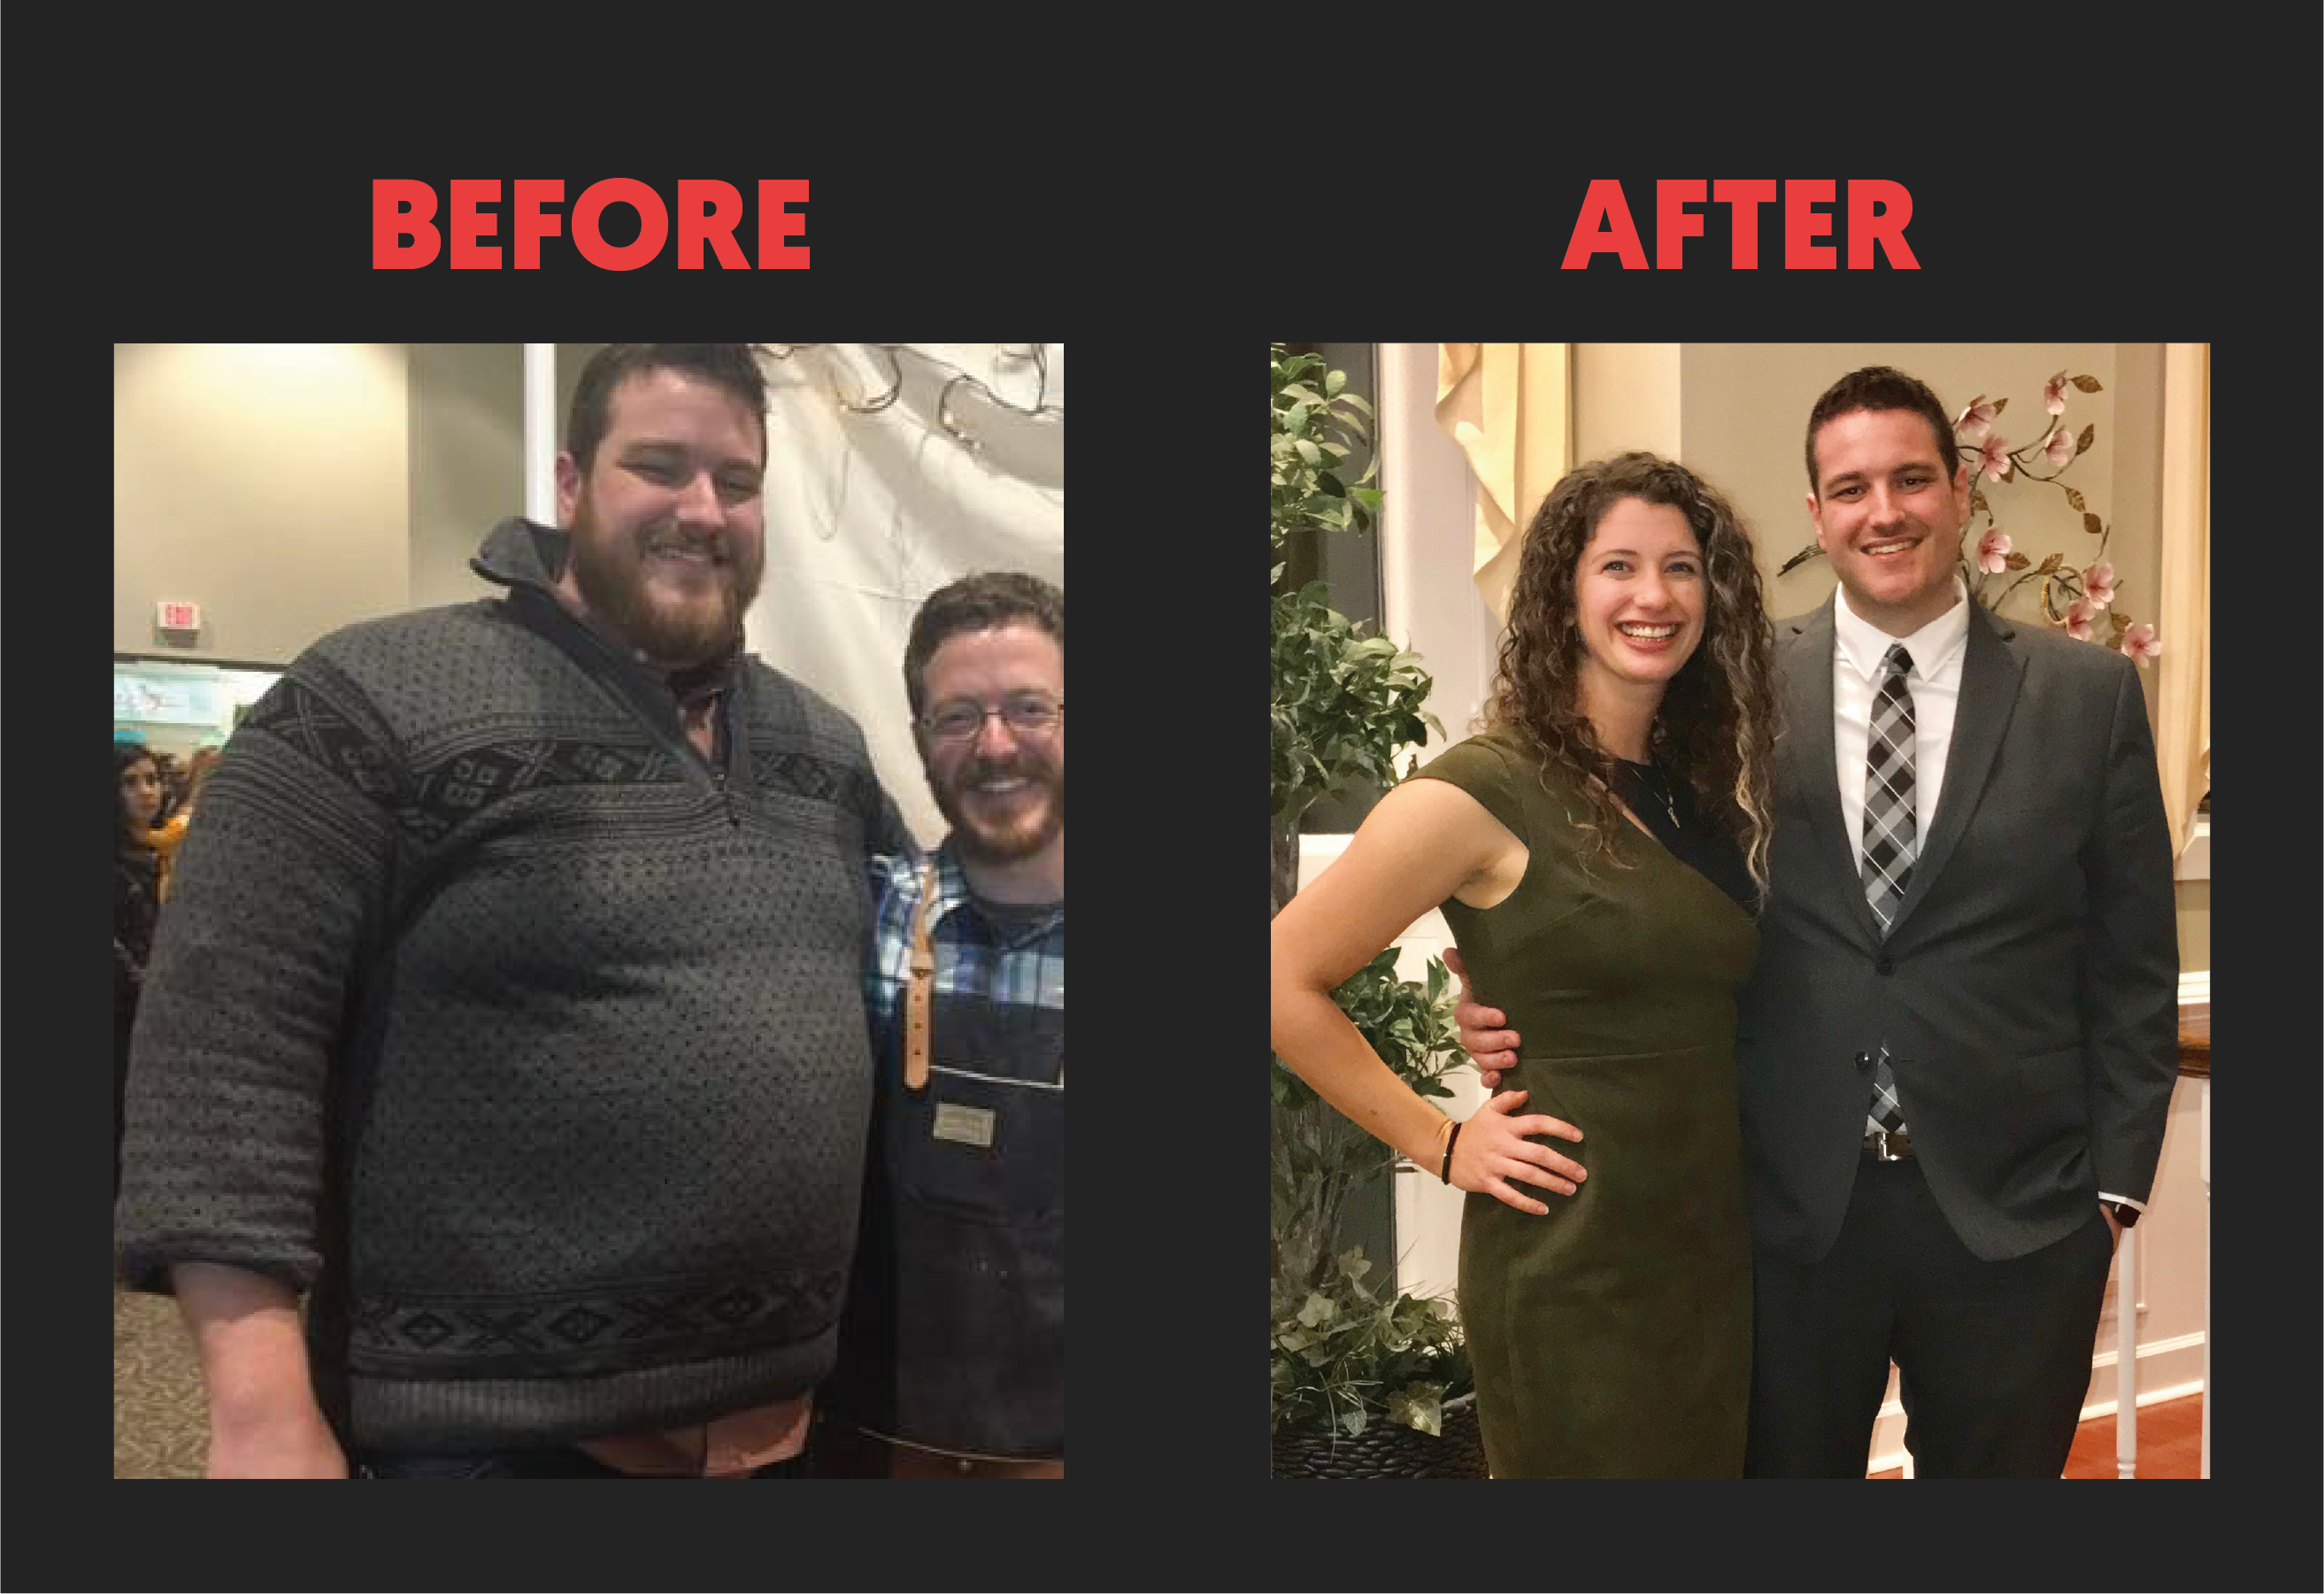 My before and after pictures. On the left I'm 65 pounds heavier and have a beard.